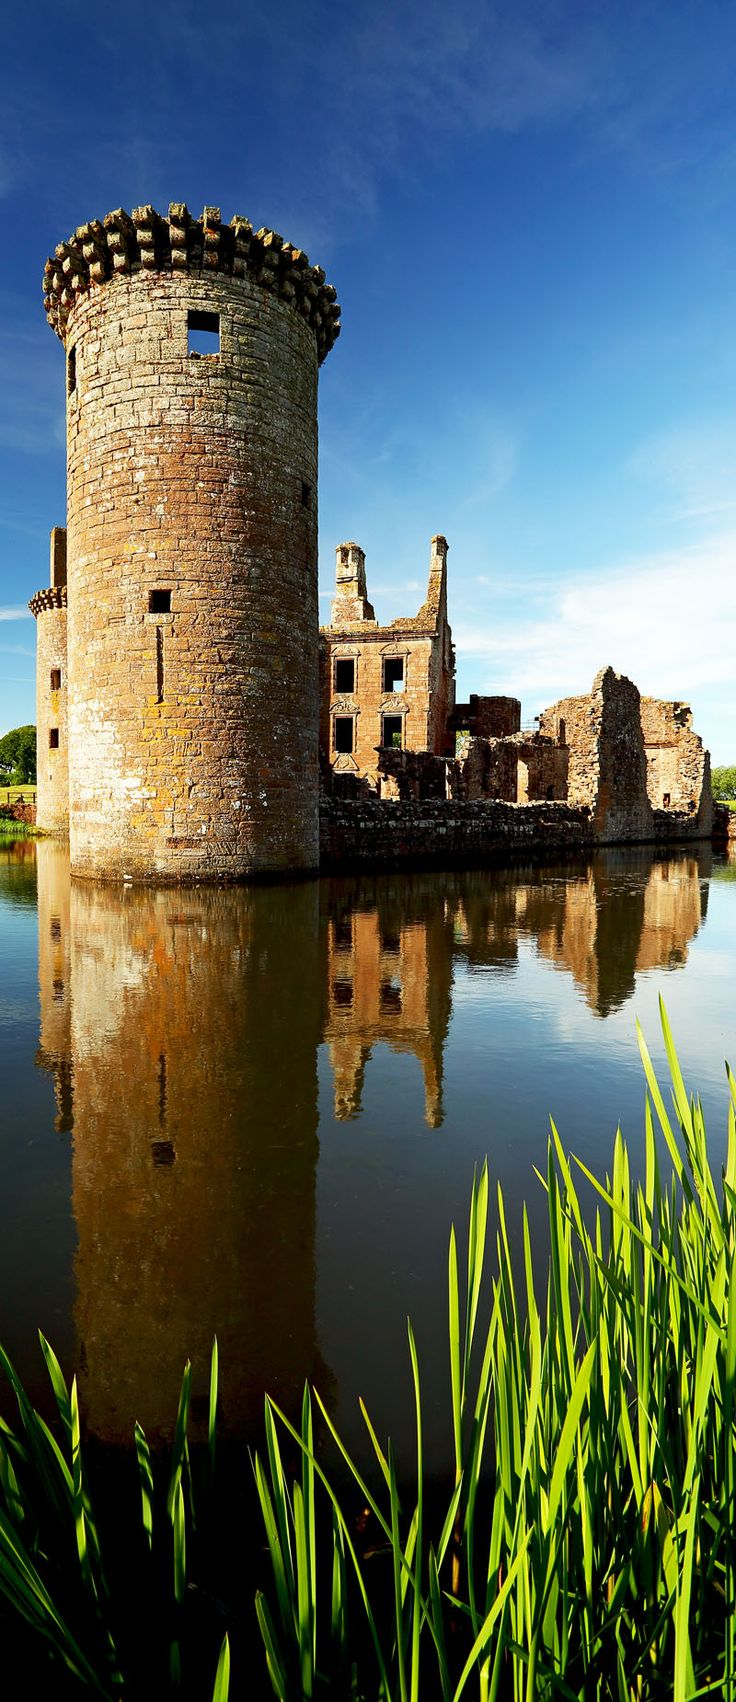 Caerlaverock Castle reflecting on the moat that surrounds the castle in Dumfrieshire, Scotland. with <3 from JDzigner www.jdzigner.com